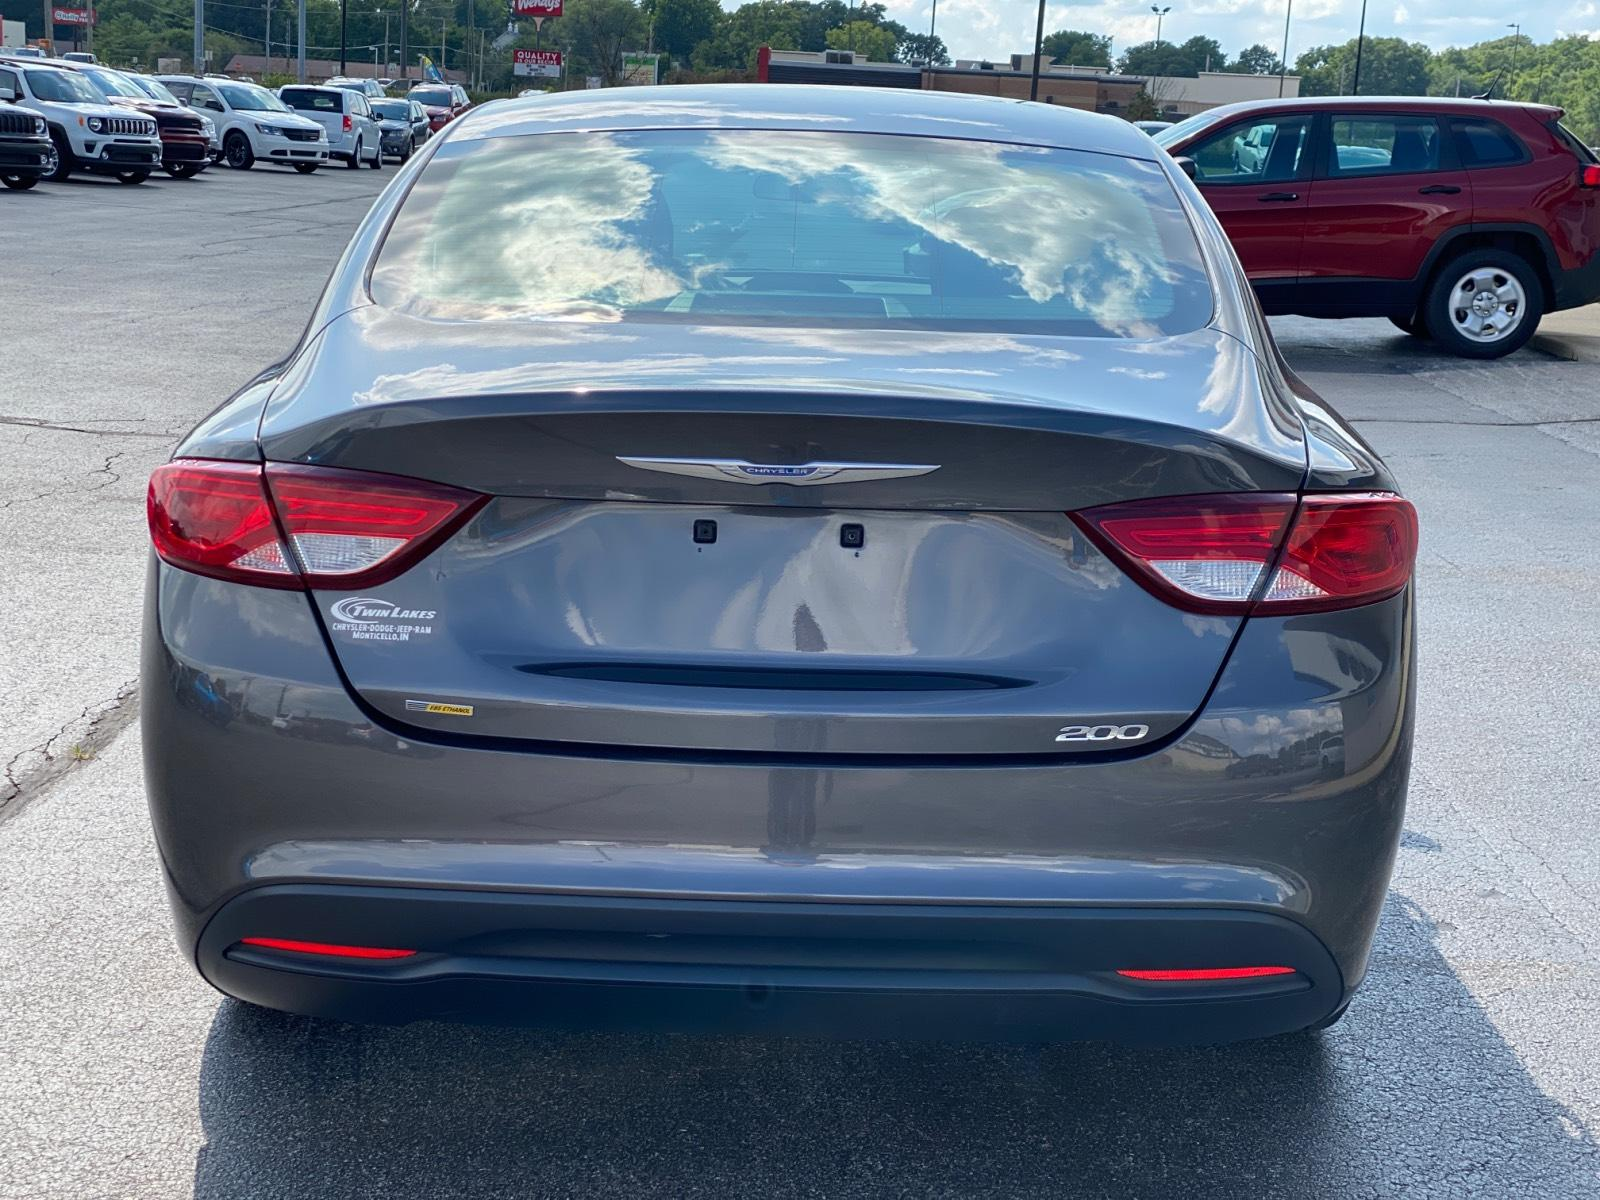 Pre-Owned 2016 Chrysler 200 4dr Sdn LX FWD